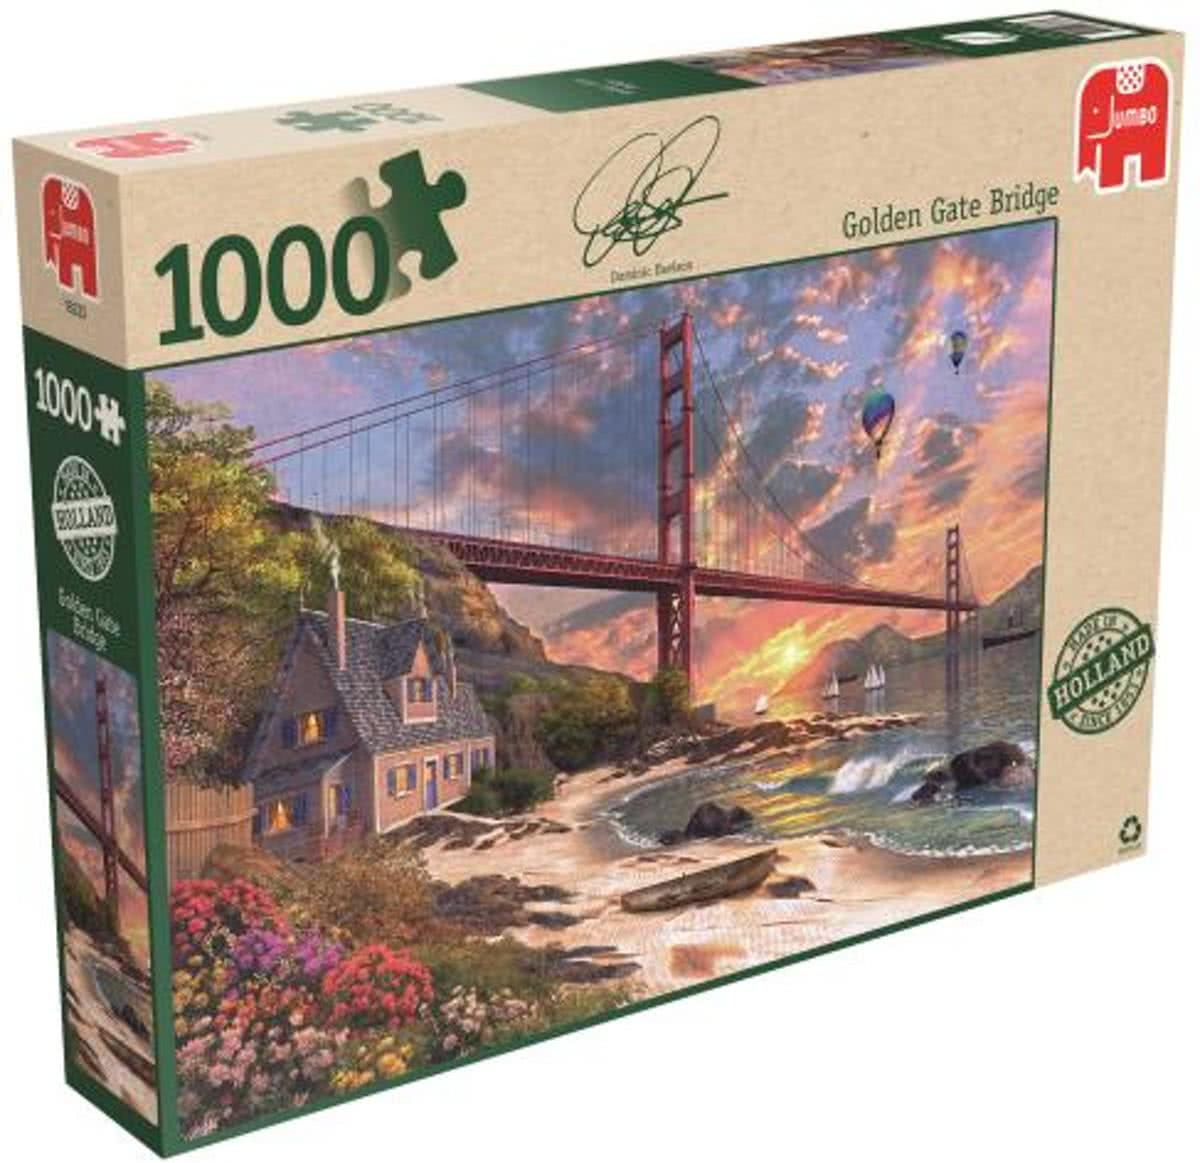 Golden Gate Bridge 1000 stukjes